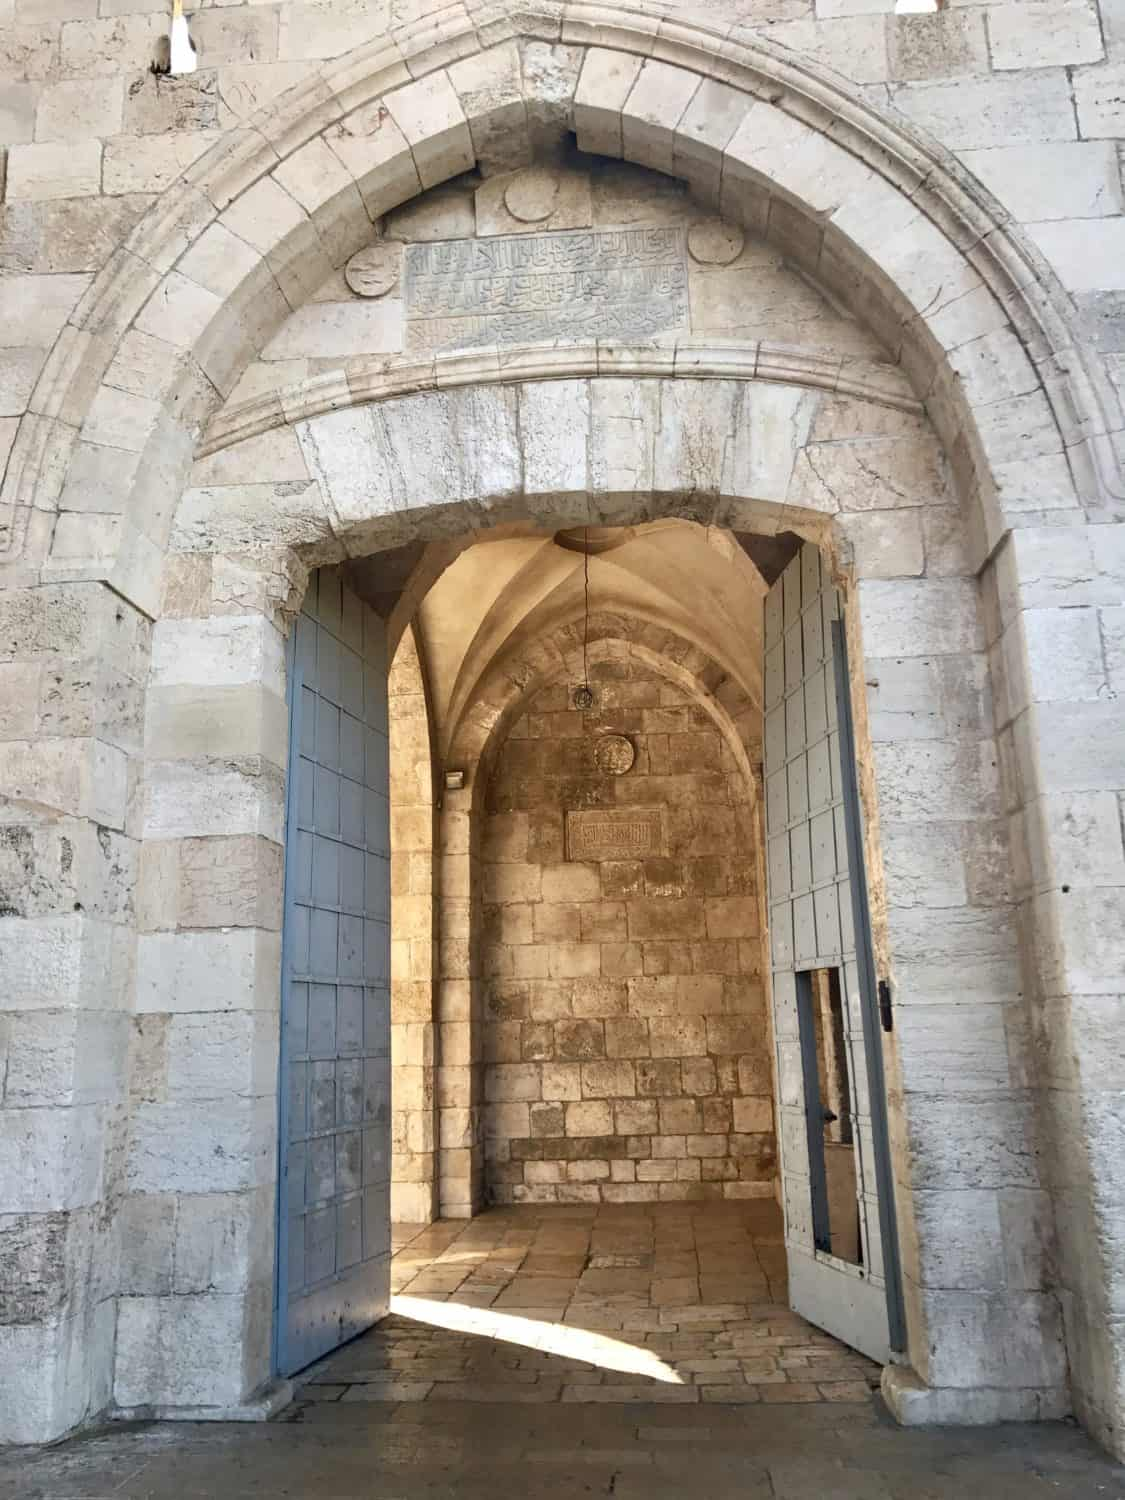 Visit the gates of the Old City on your trip to Jerusalem